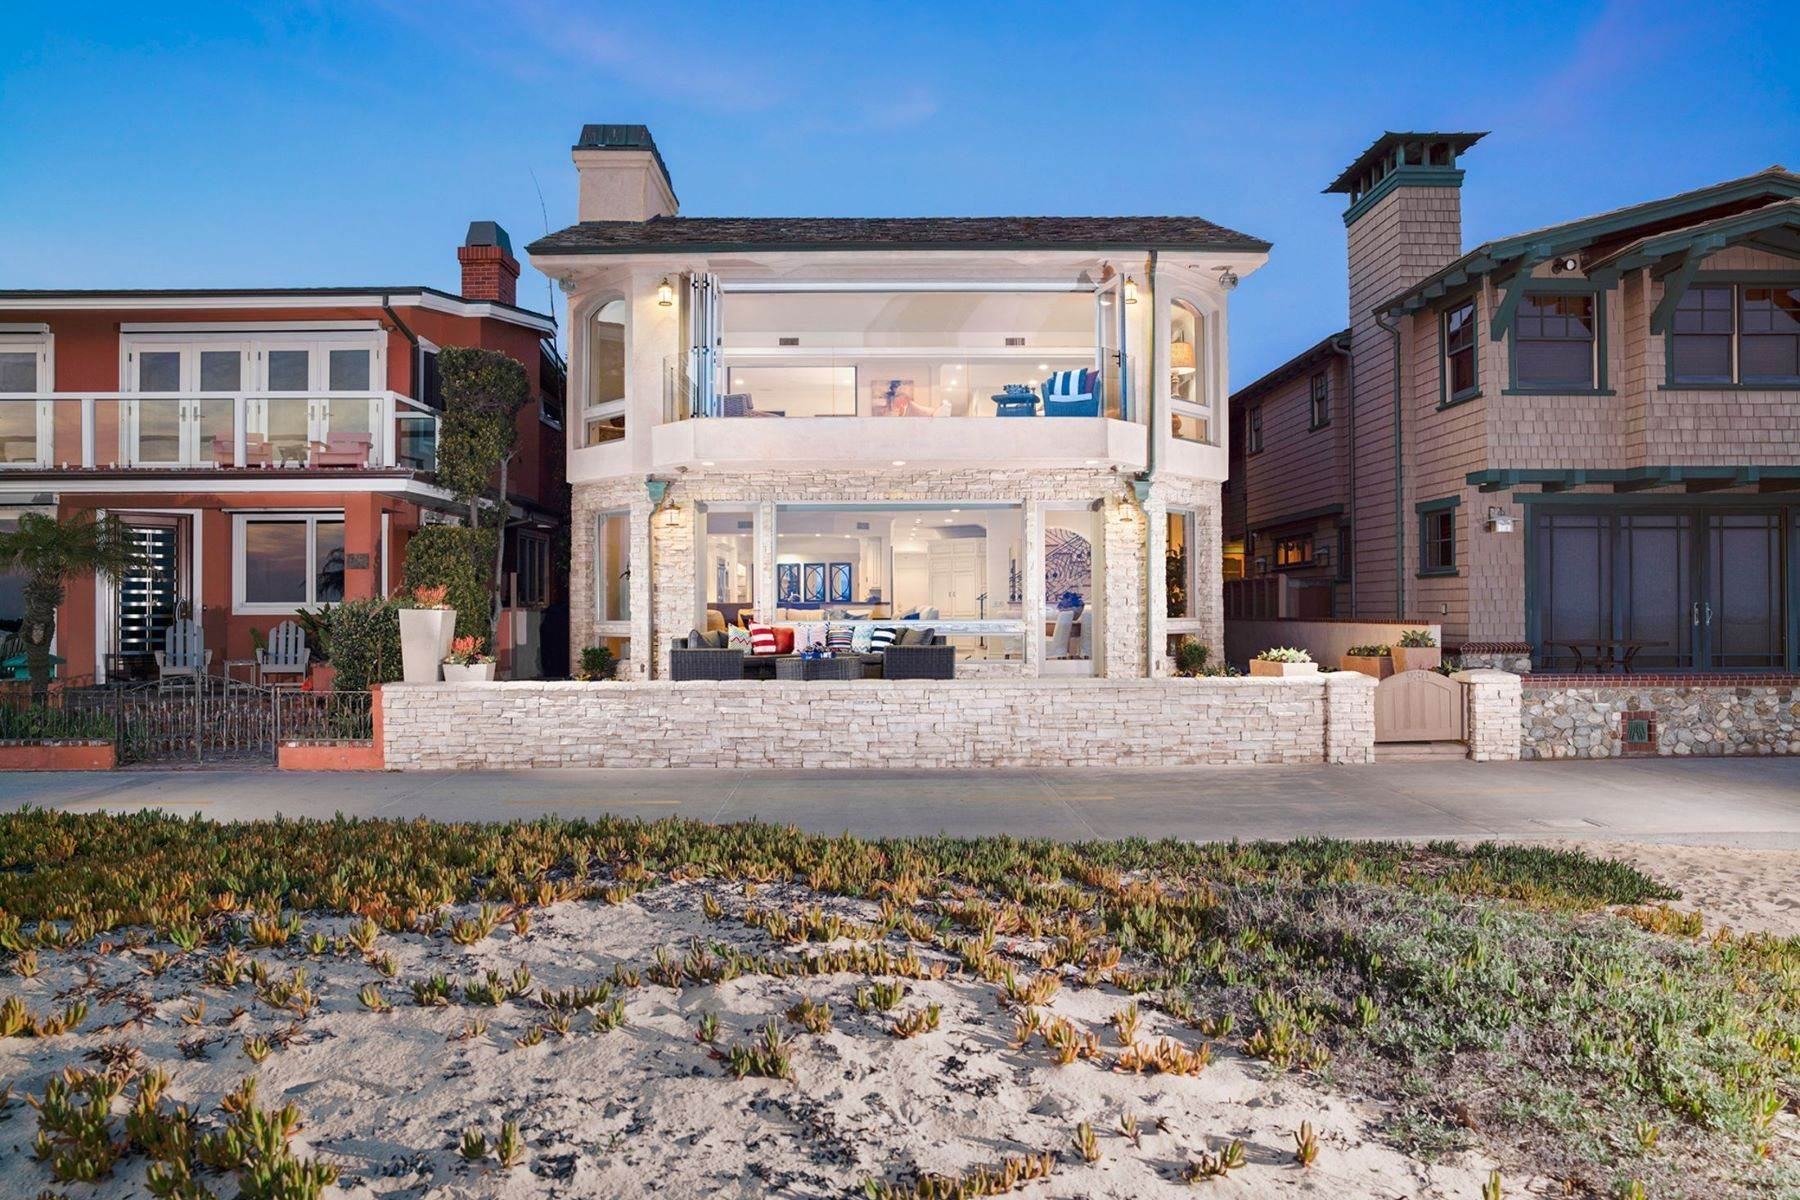 Single Family Homes for Sale at 930 Weat Oceanfront 930 W OCEANFRONT Newport Beach, California 92661 United States